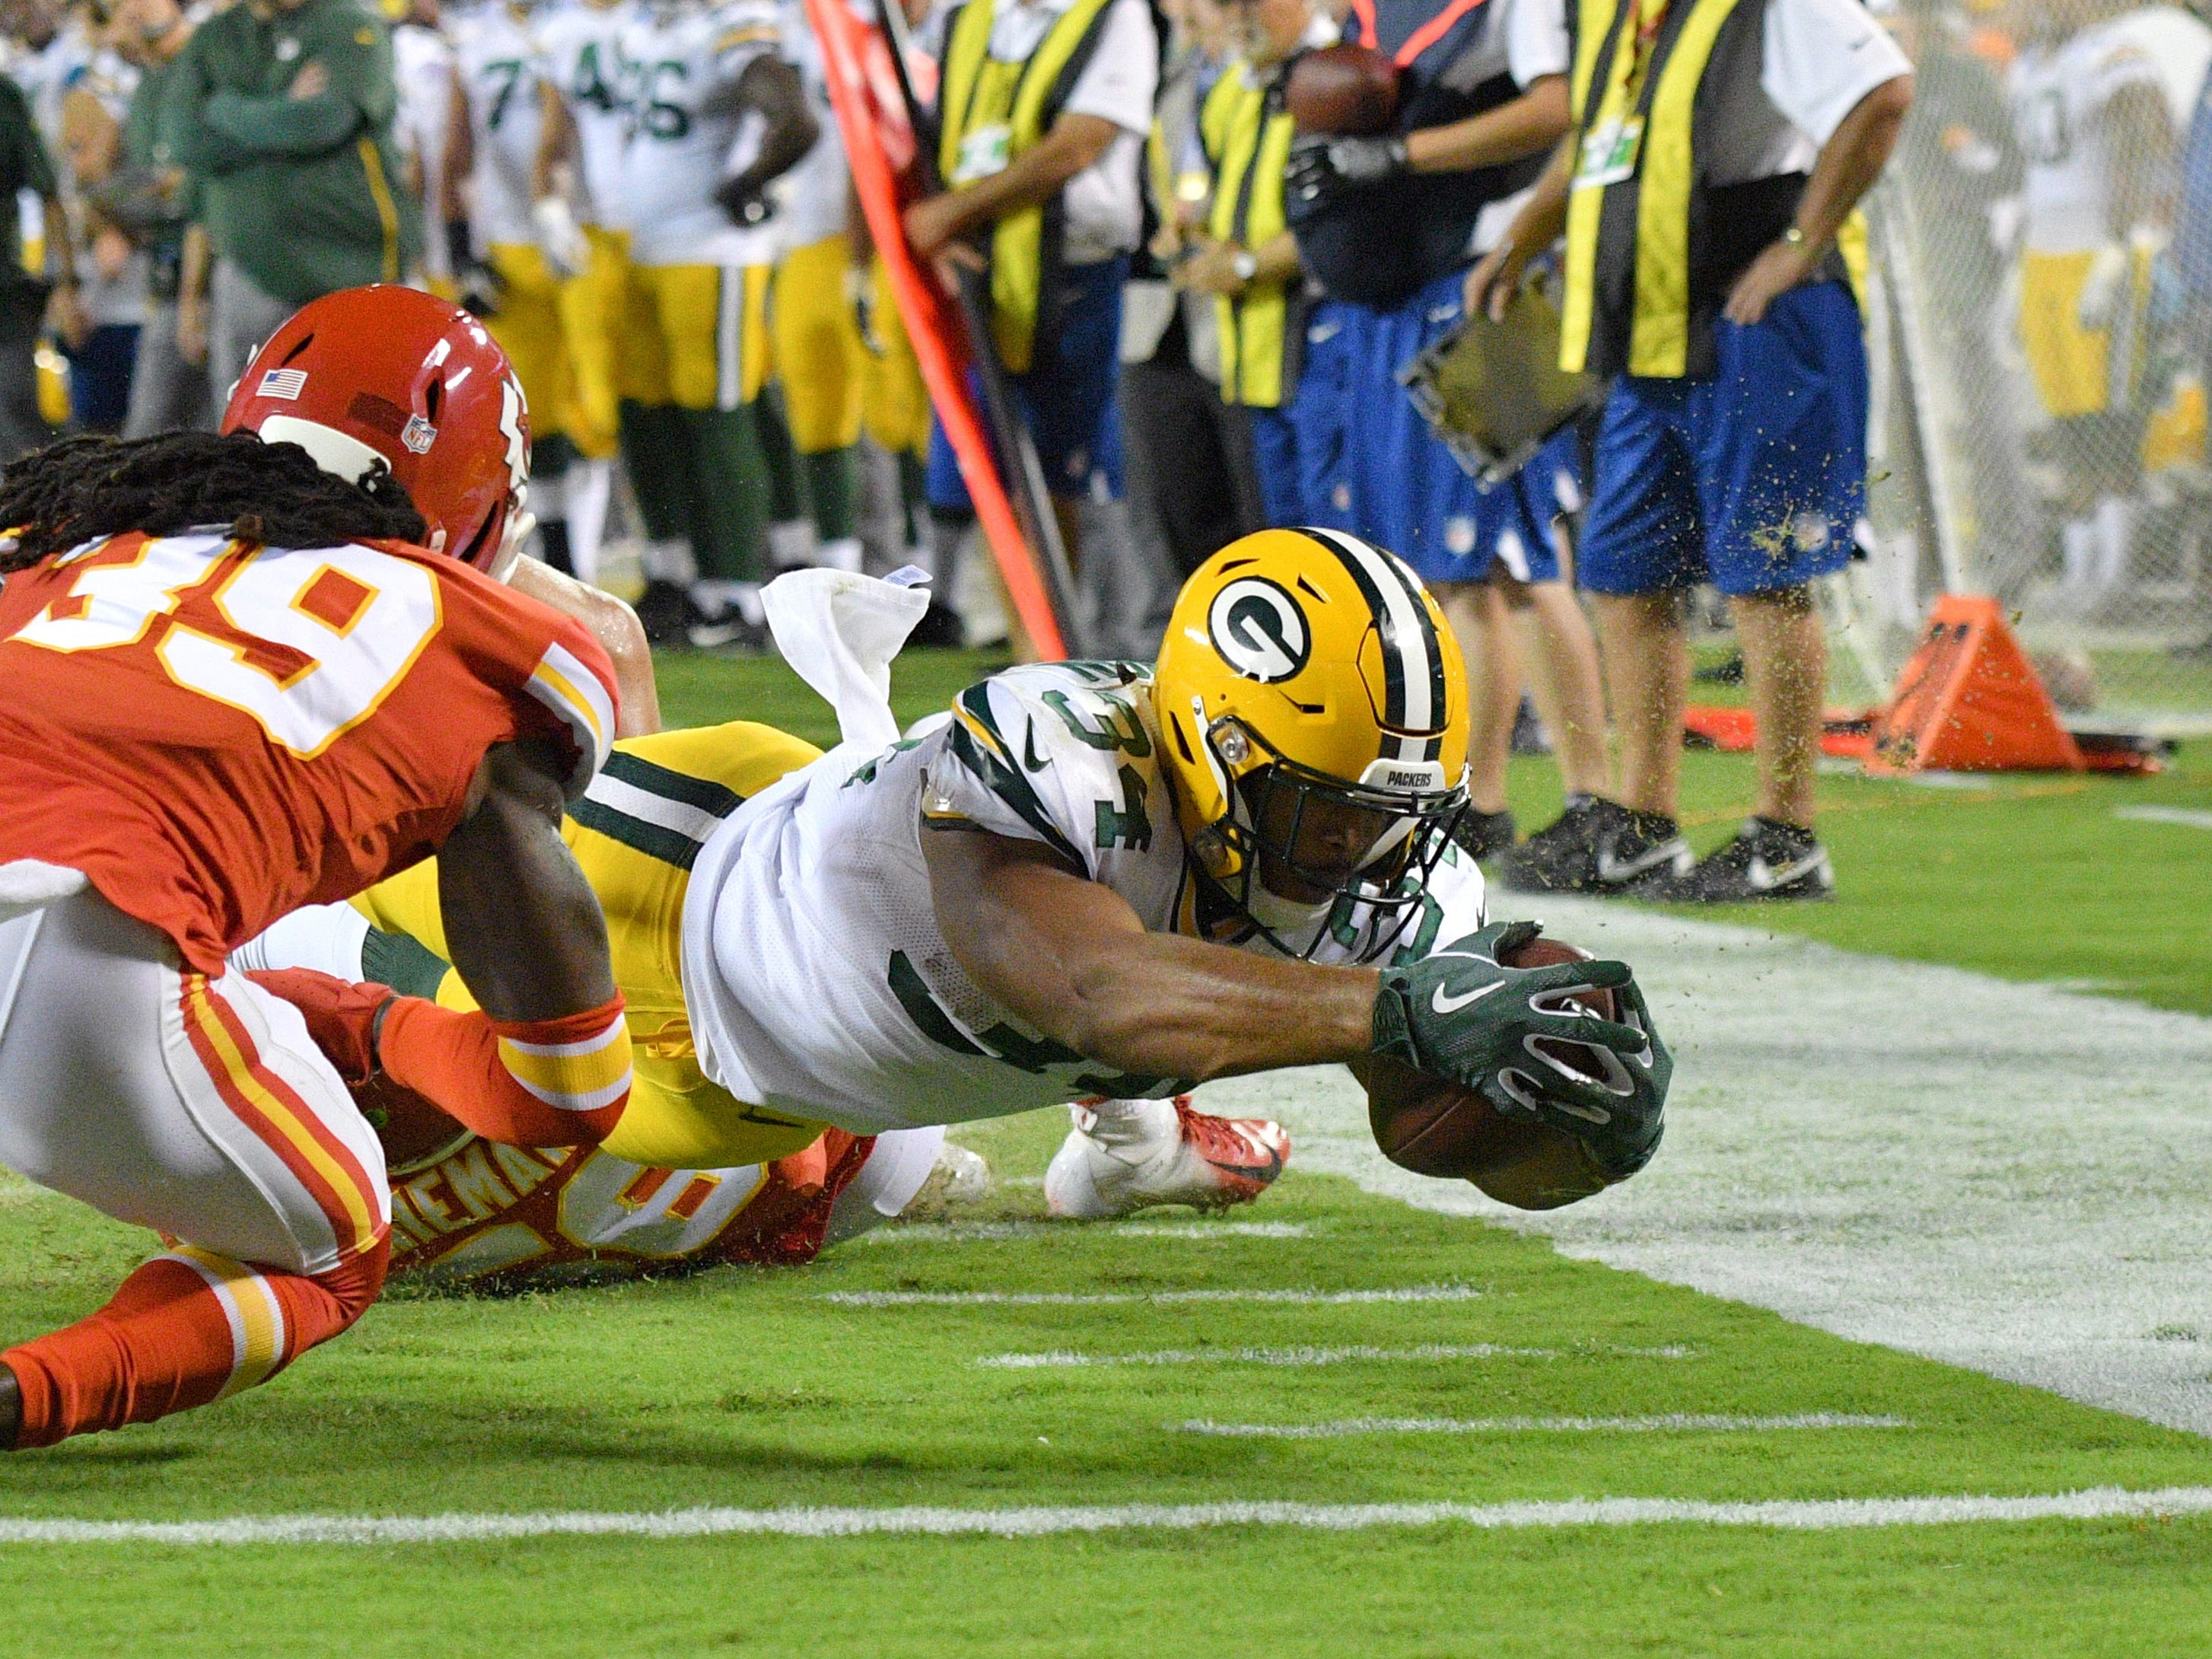 Aug 30, 2018; Kansas City, MO, USA; Green Bay Packers running back Joel Bouagnon (34) runs and is tackled by Kansas City Chiefs linebacker Ben Niemann (56) and defensive back Tremon Smith (39) during the first half at Arrowhead Stadium.